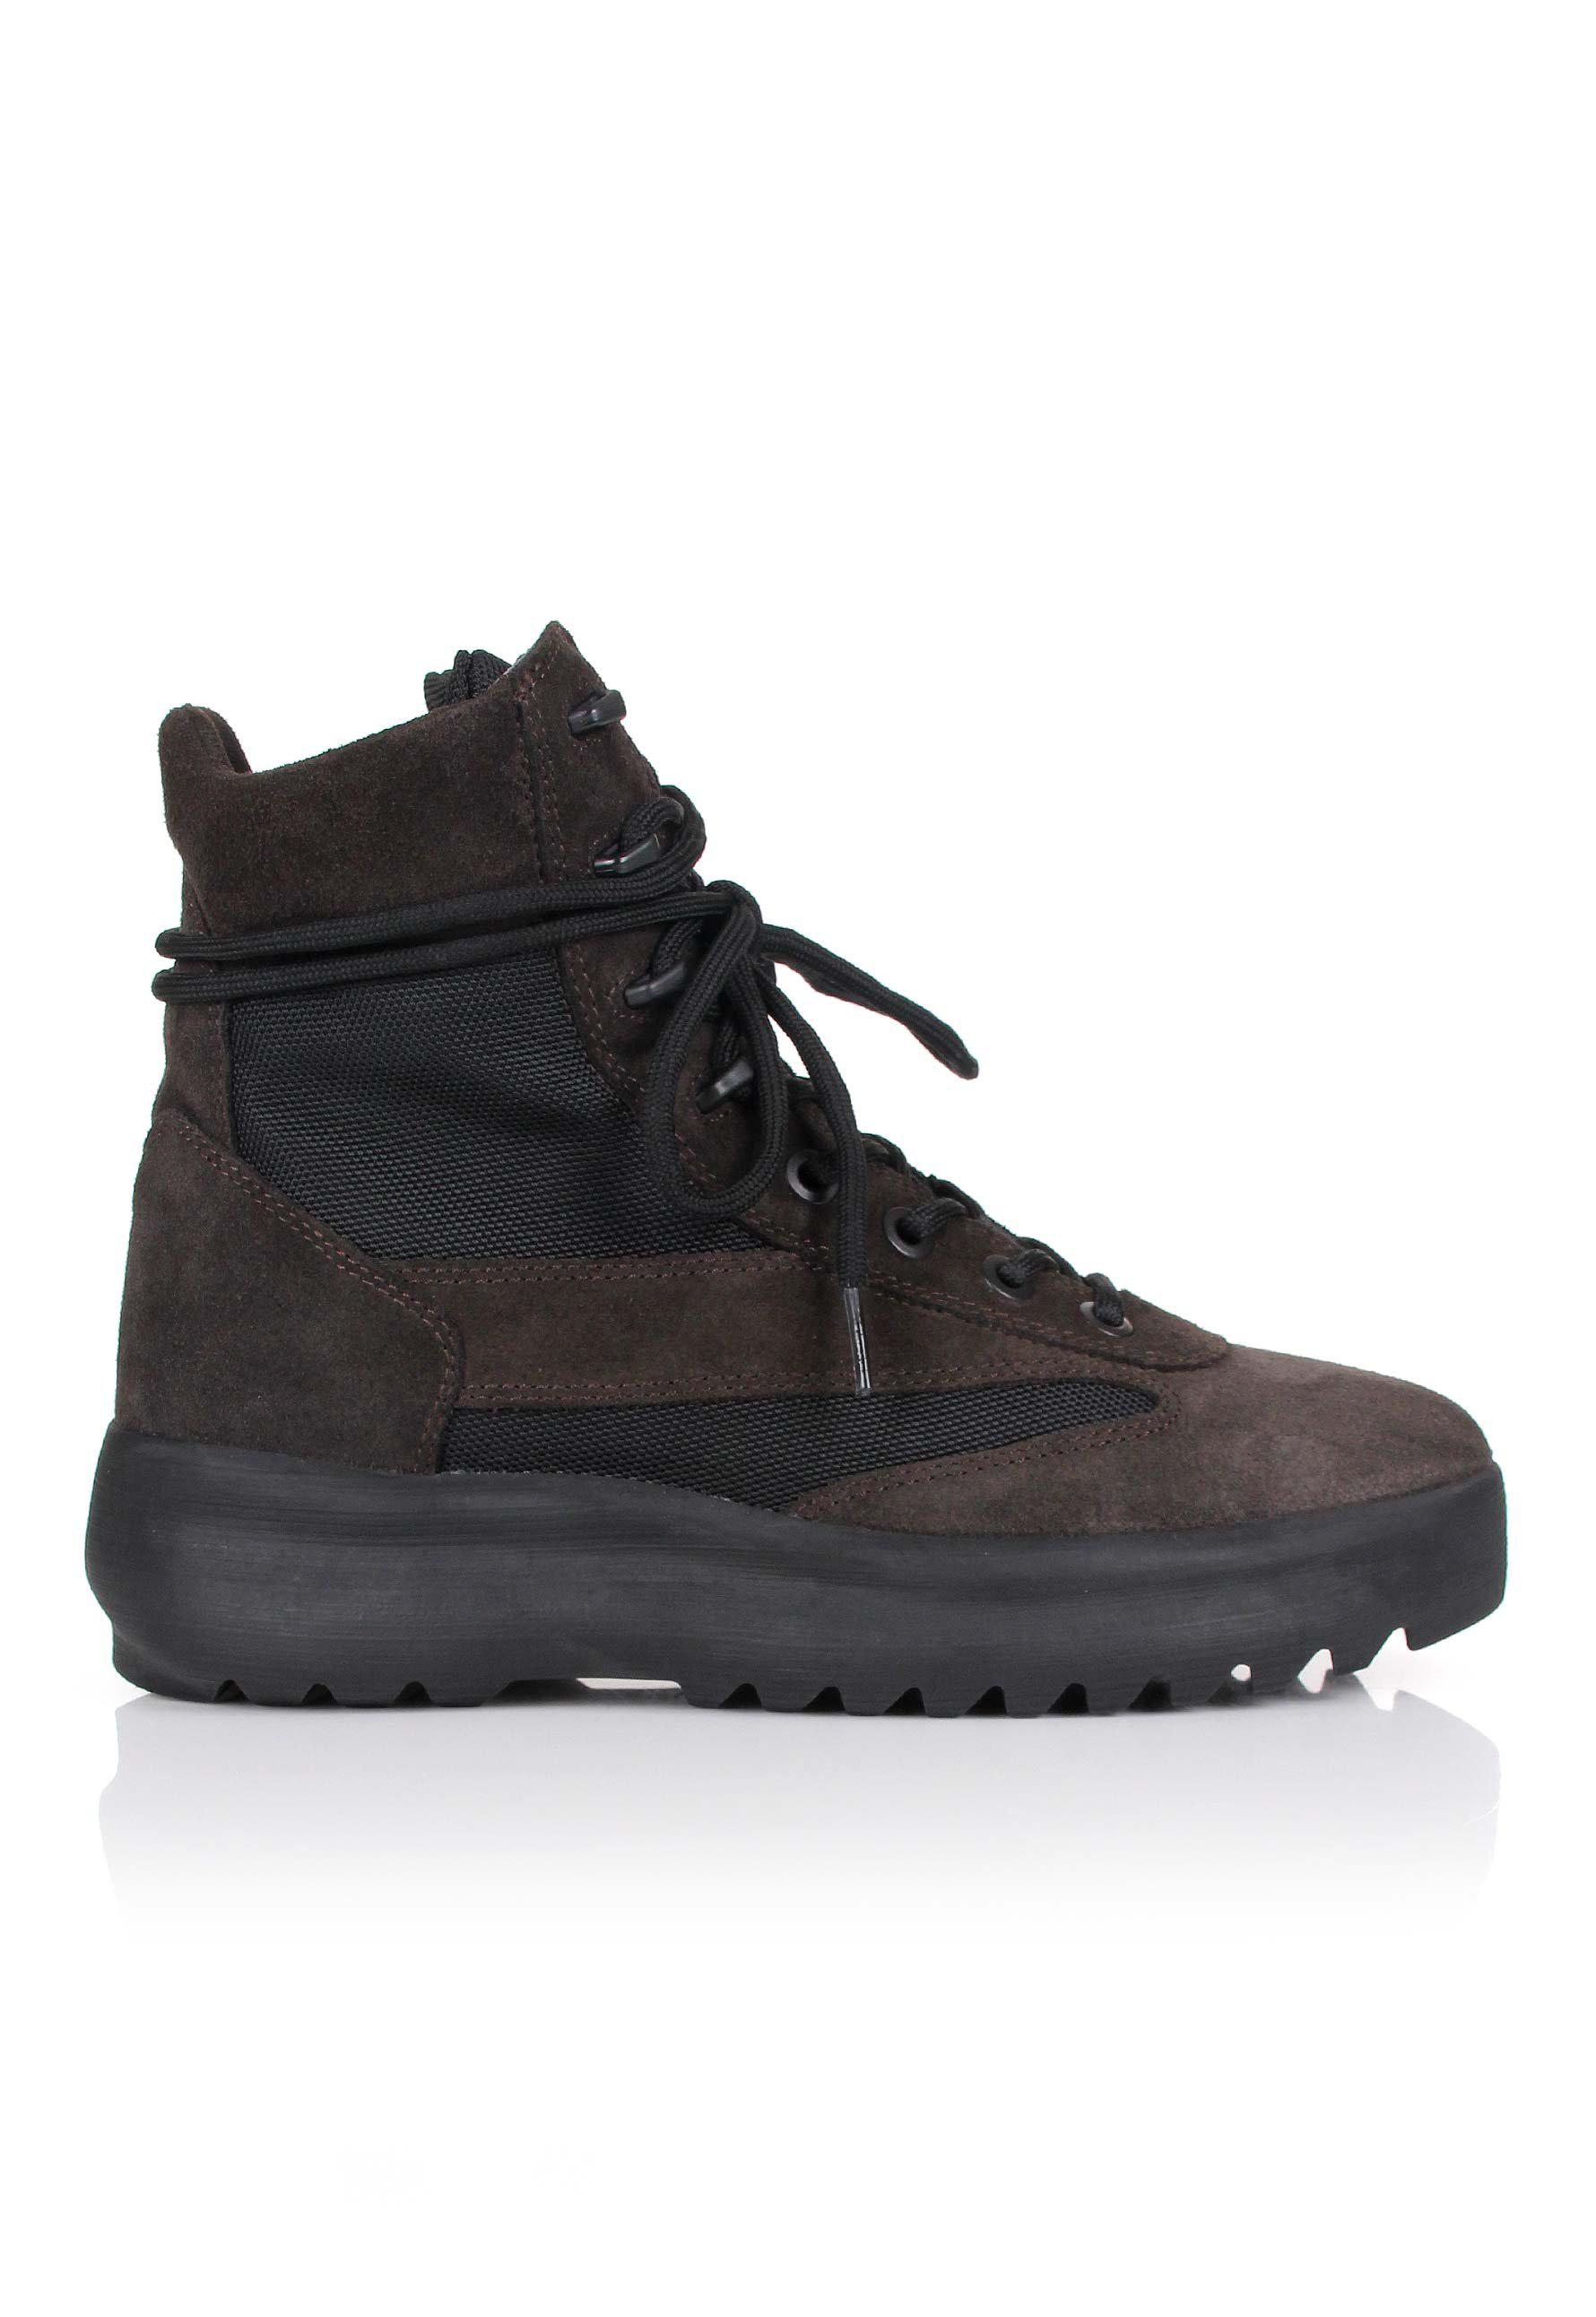 c691c2aa4bc6e Lyst - Yeezy Season 5 Military Boots Oil in Black for Men